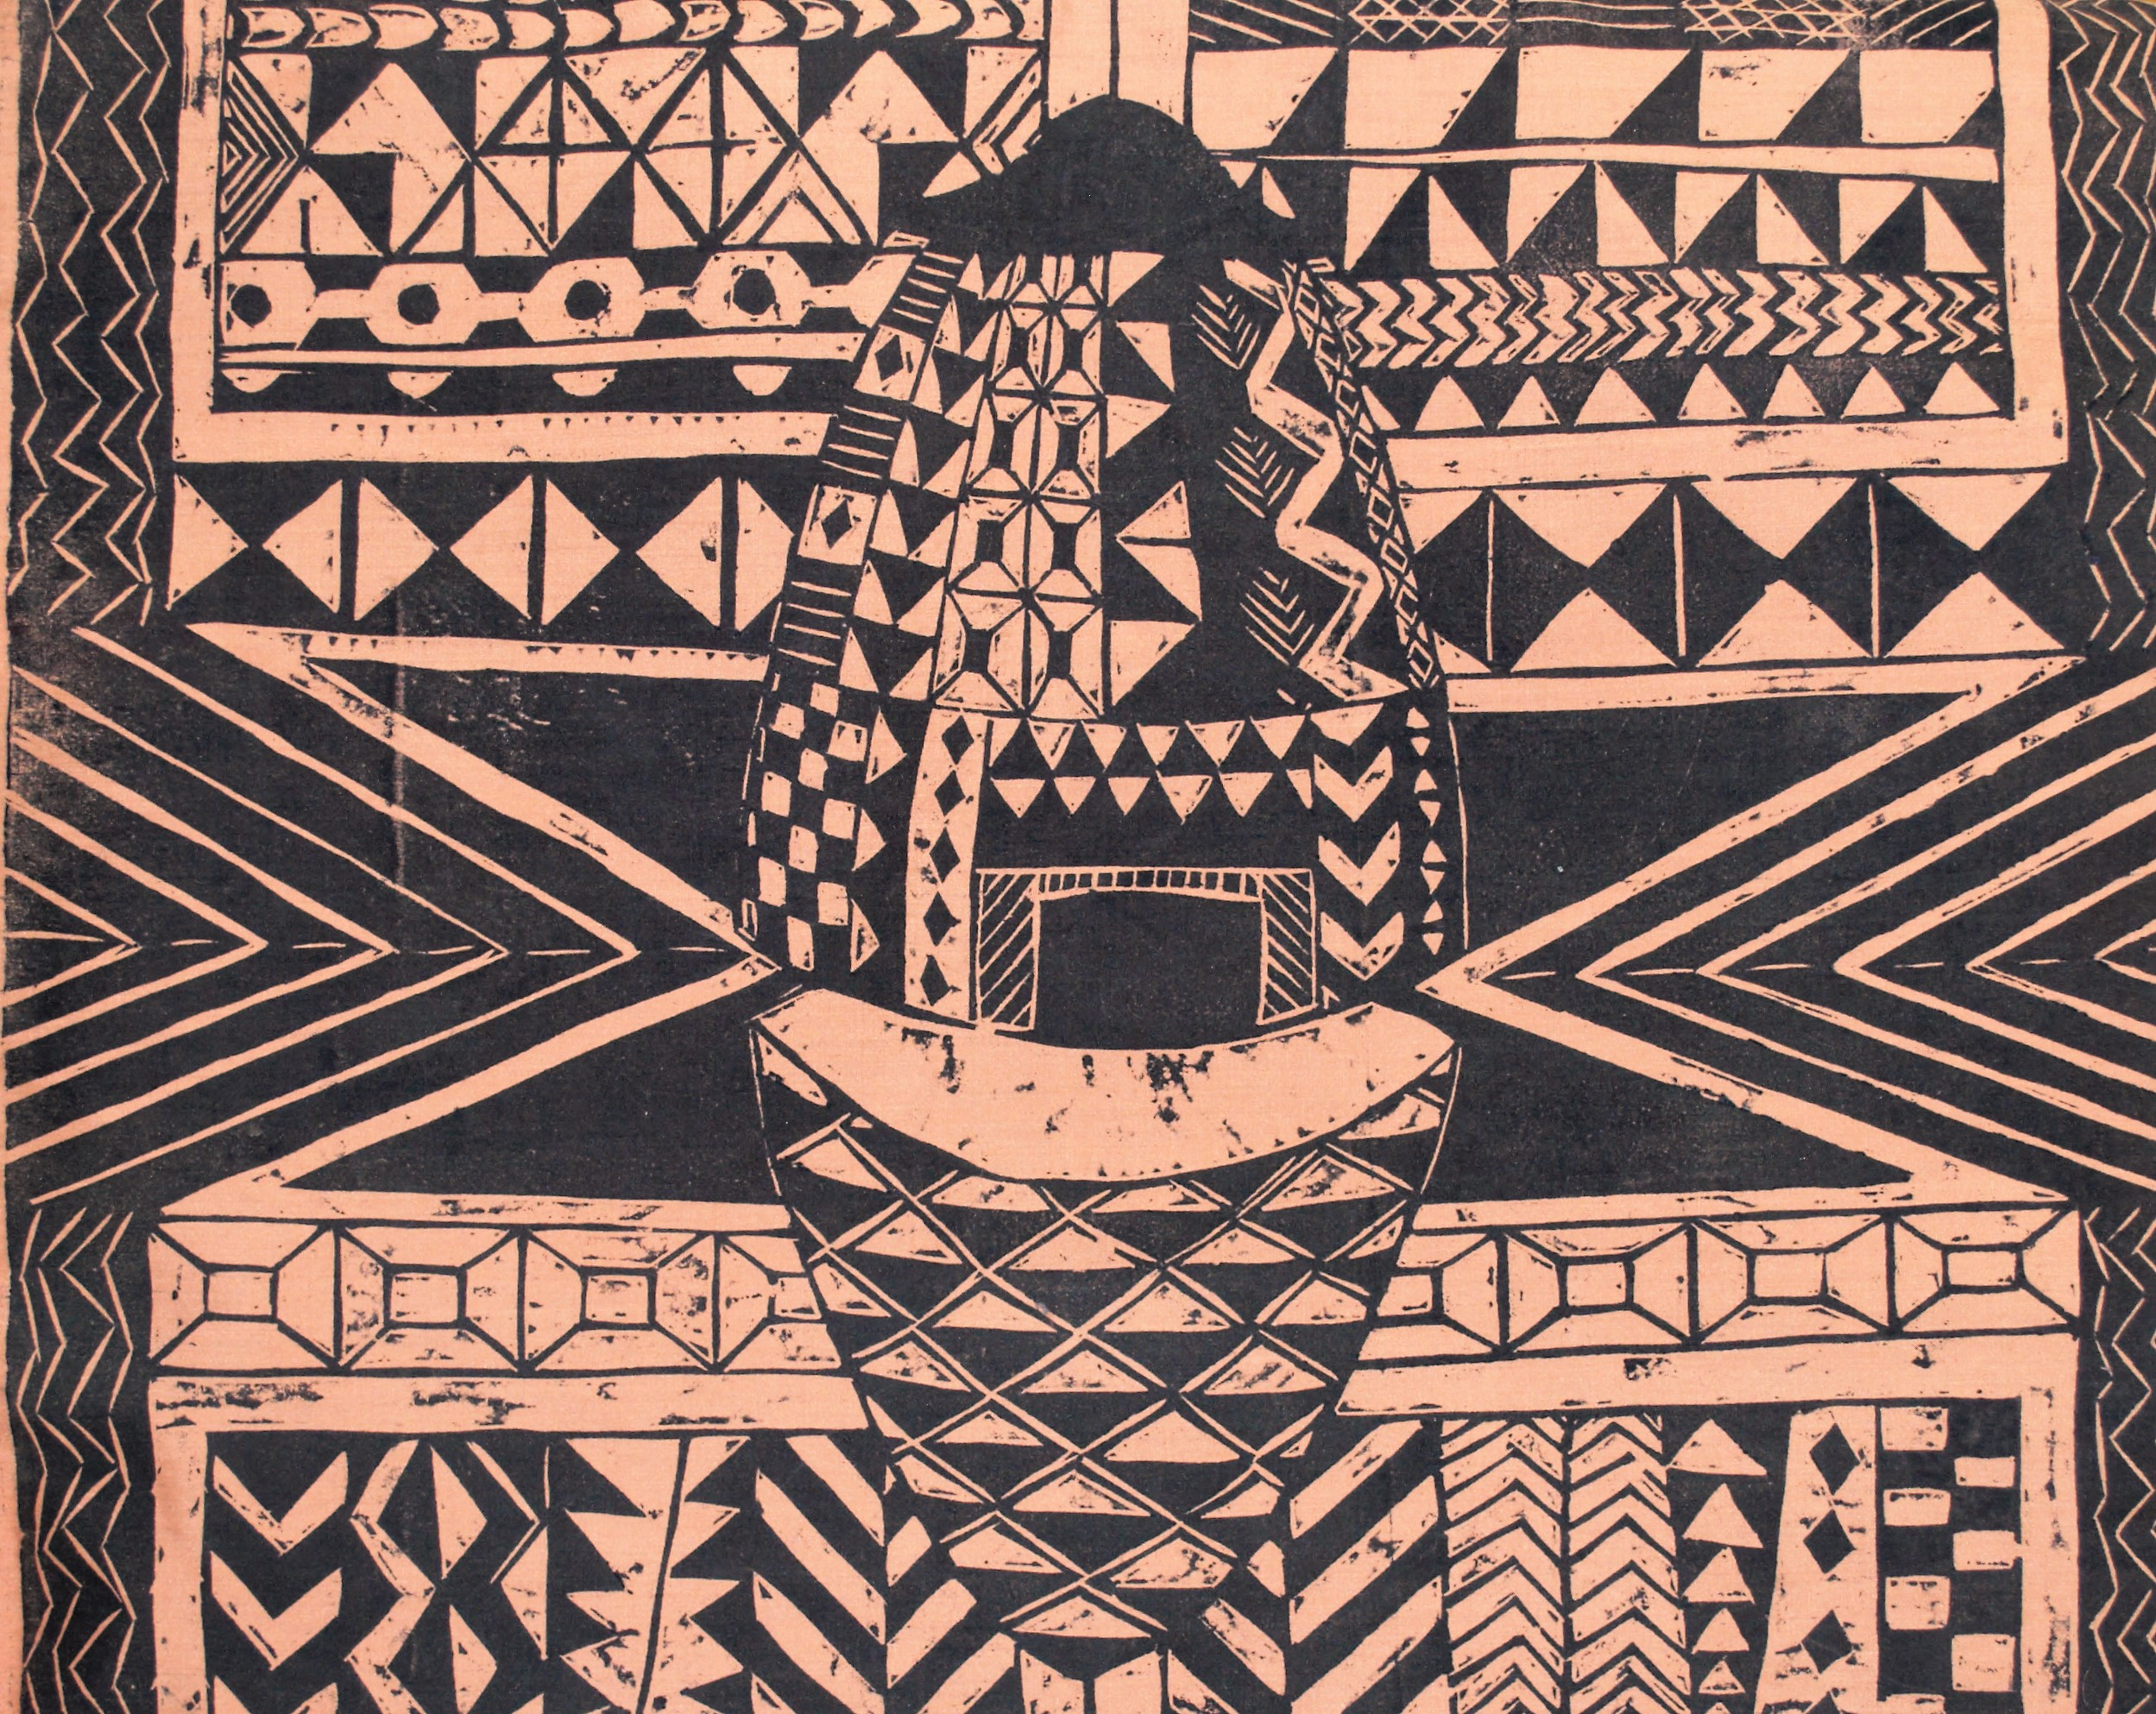 Cltural Pattern Study (Africa) #1